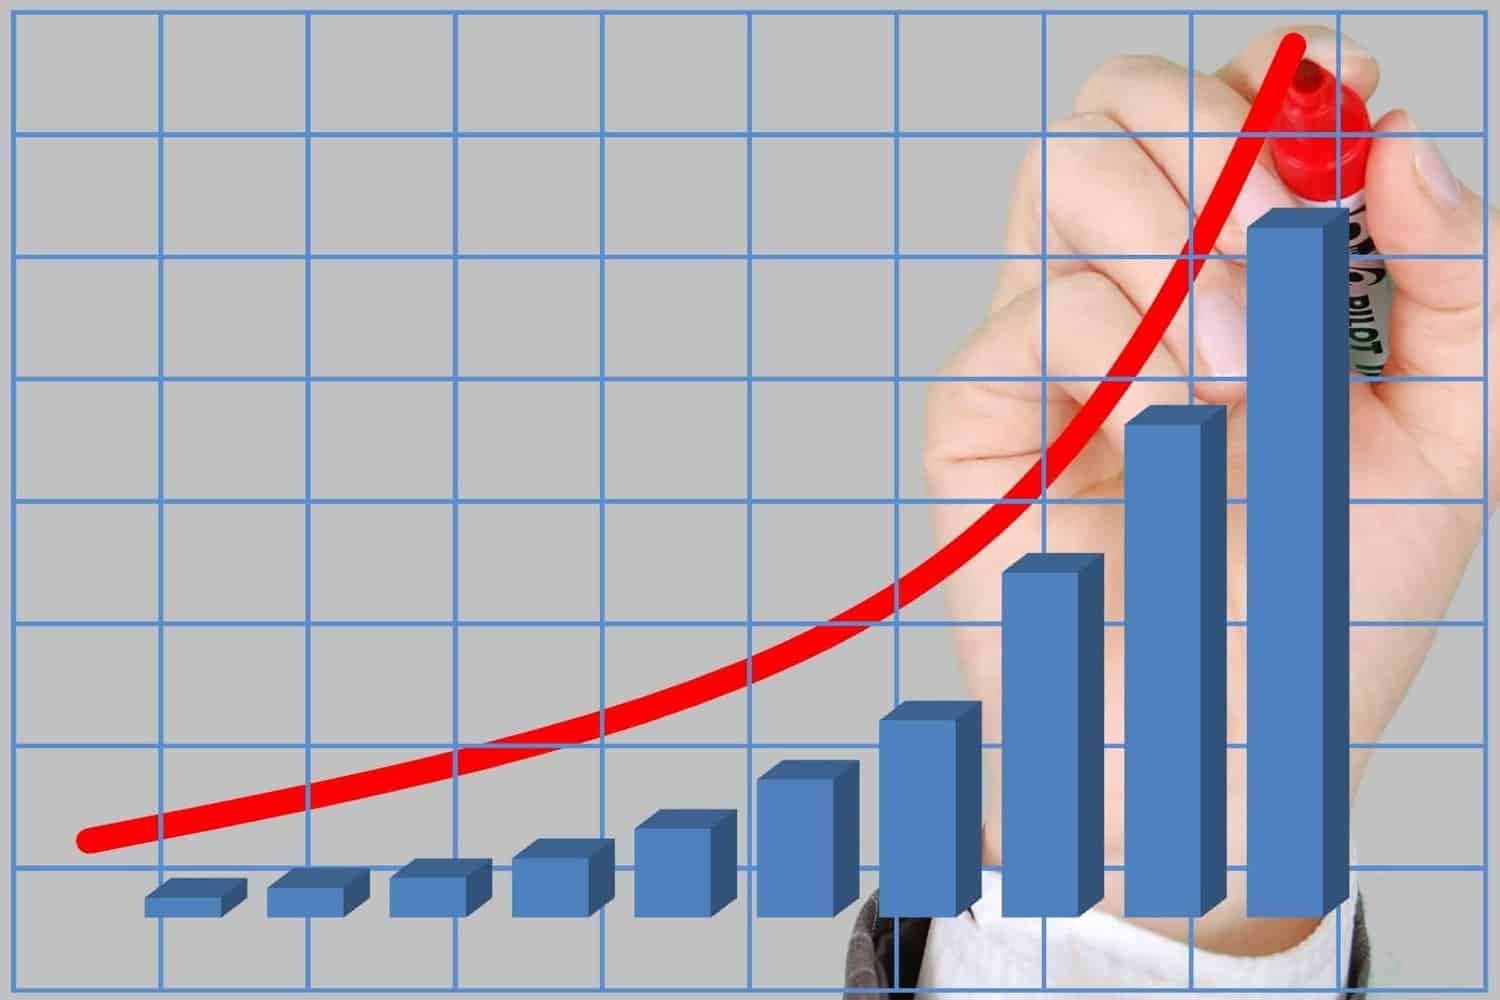 Hand drawing red line above bar chart.